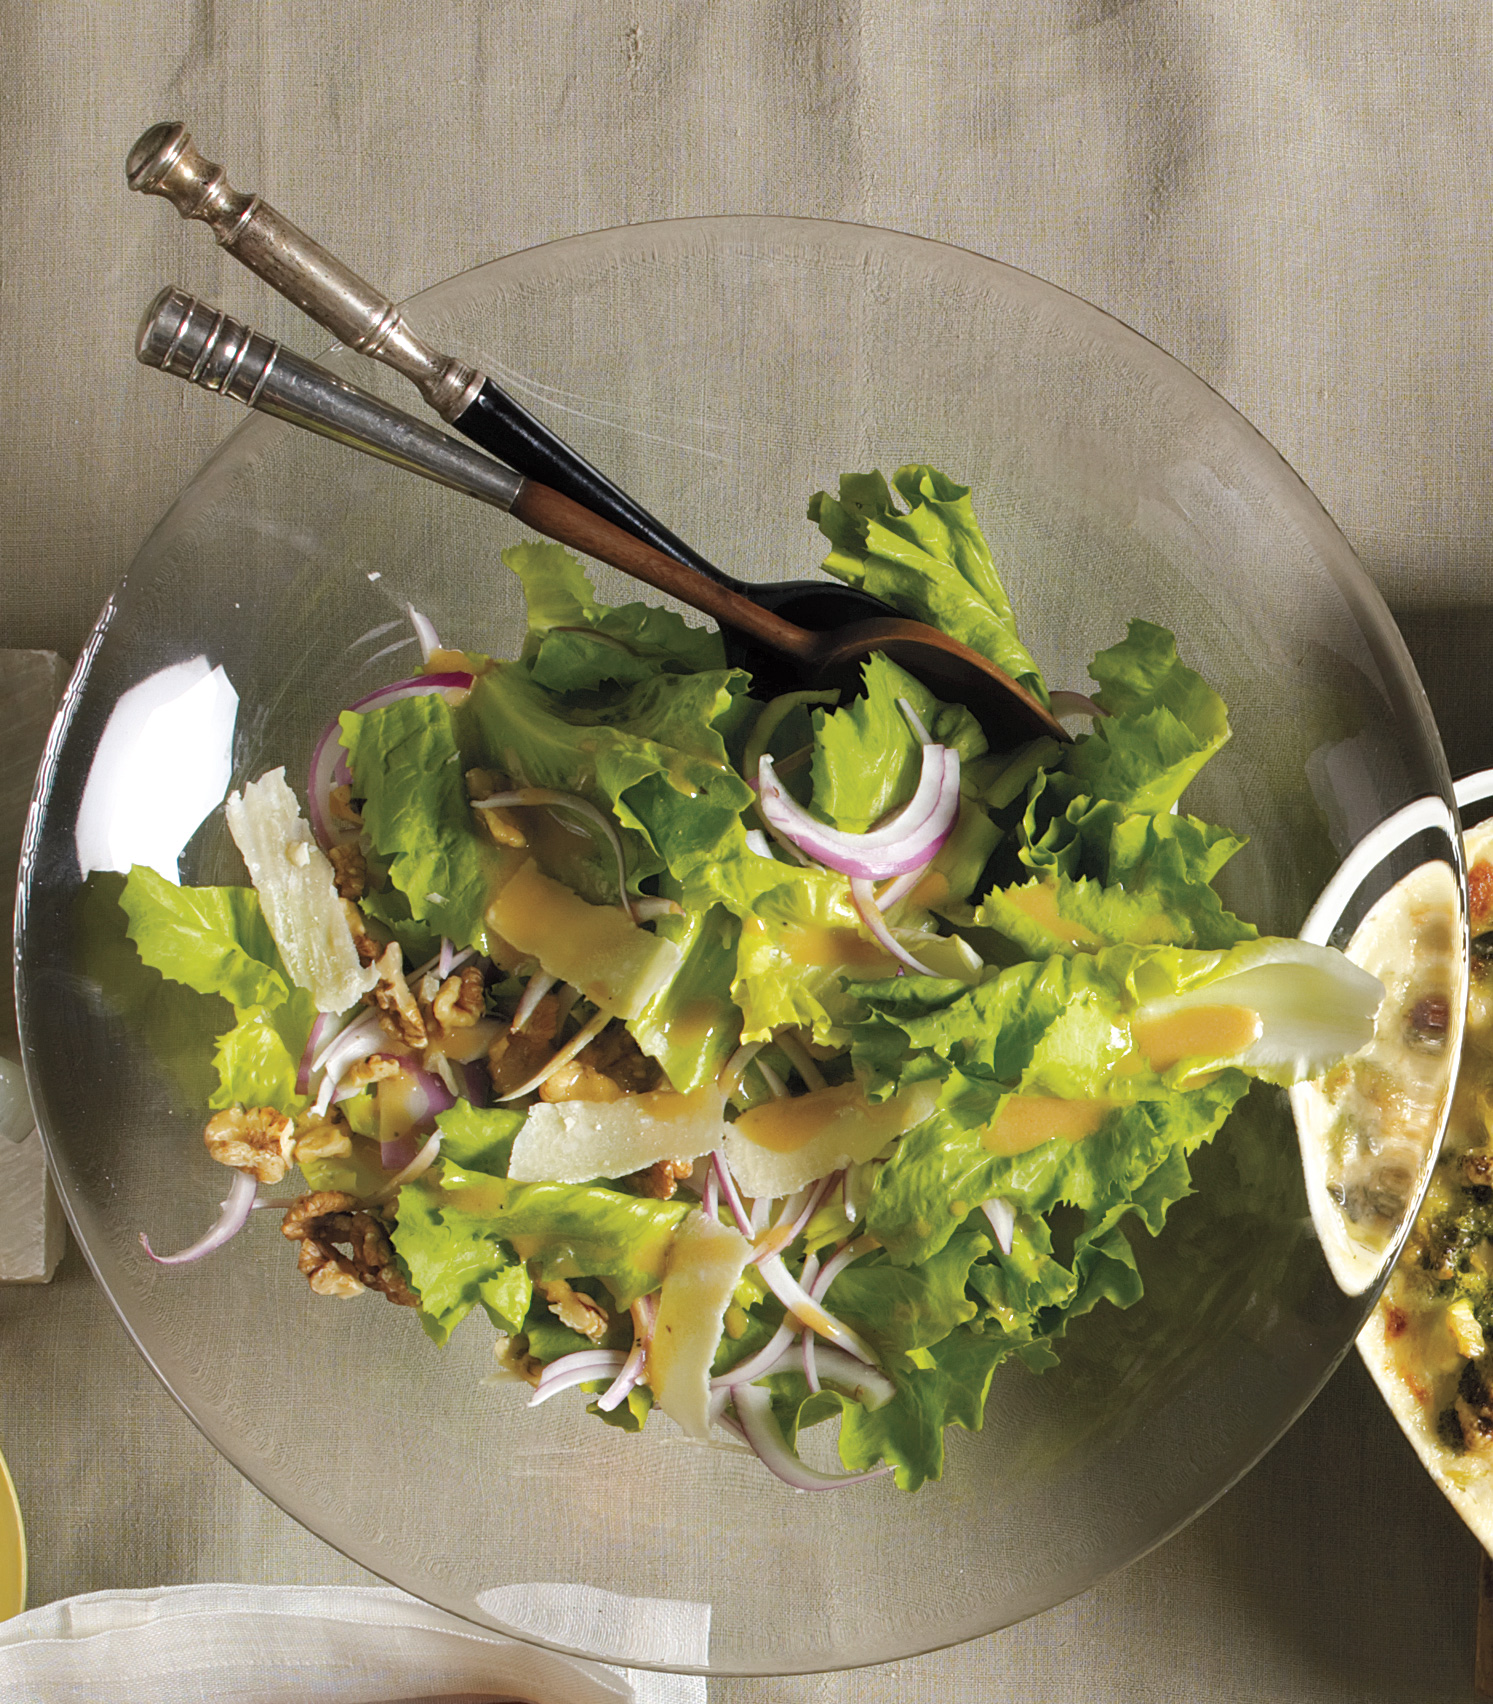 Escarole Salad With Walnuts and Parmesan